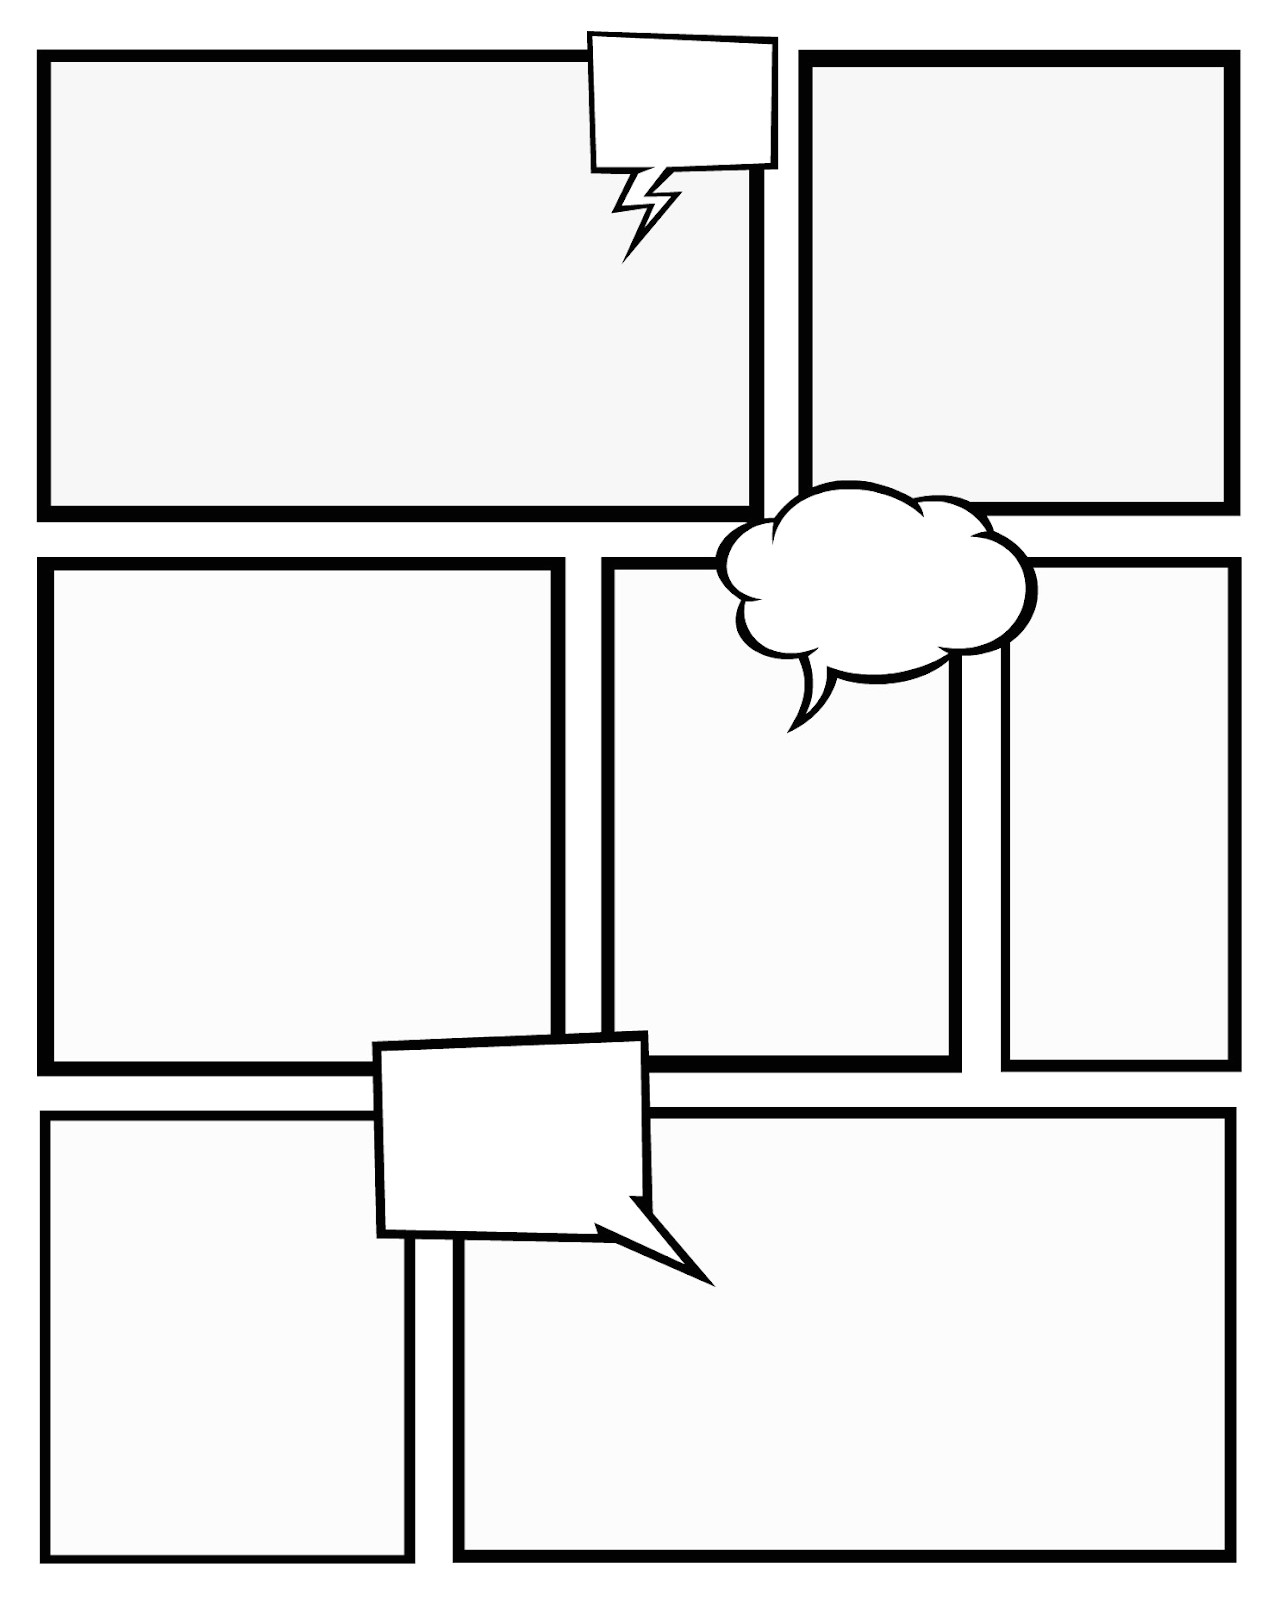 Comic Strip Template Maker 7 Best Images Of Comic Book Templates Printable Free